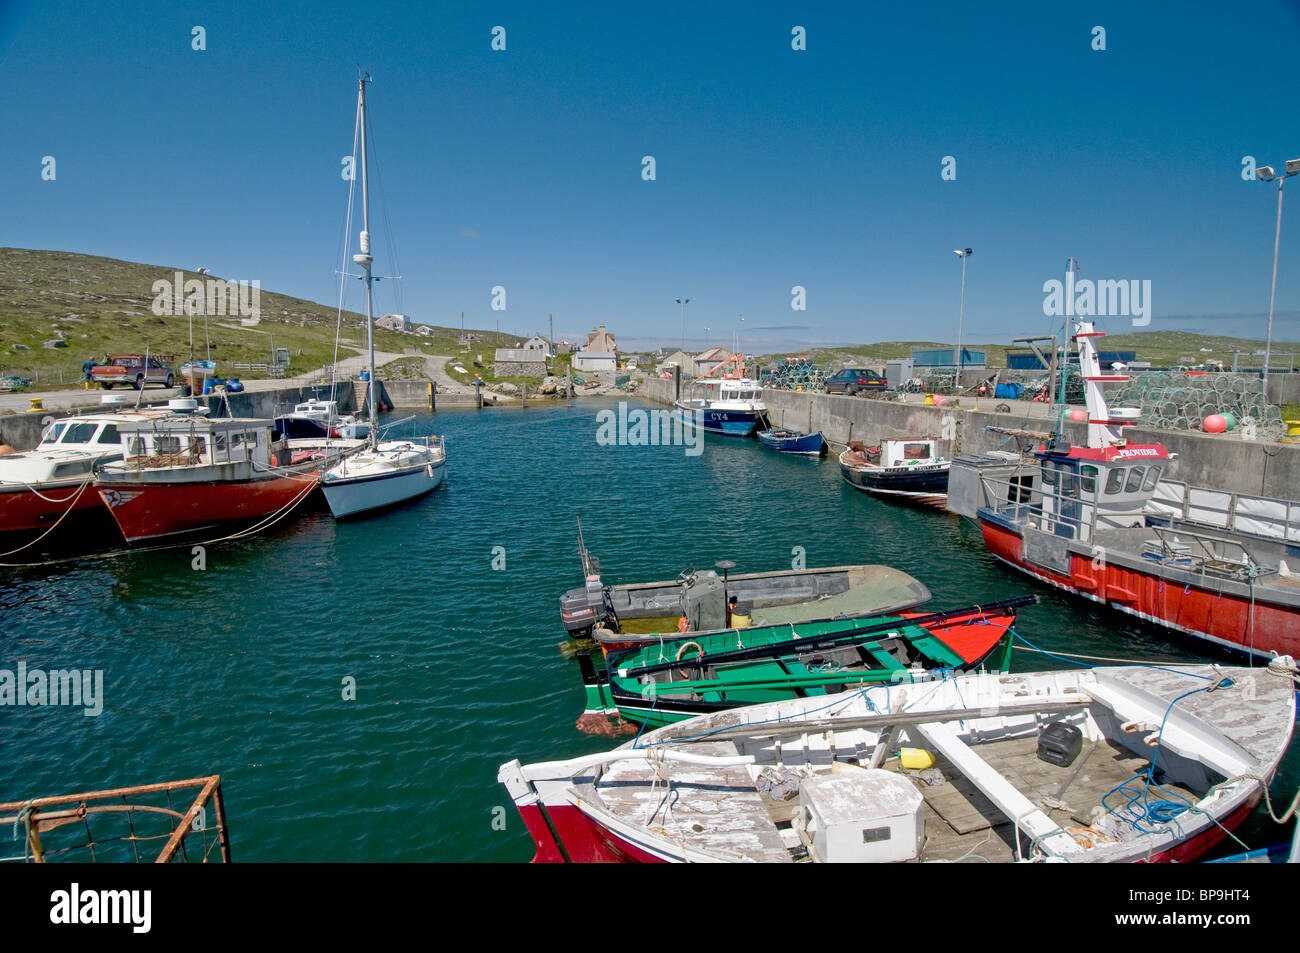 The harbour at Borgh on the Isle of Berneray, Outer Hebrides. Western Isles. Scotland.  SCO 6355 - Stock Image